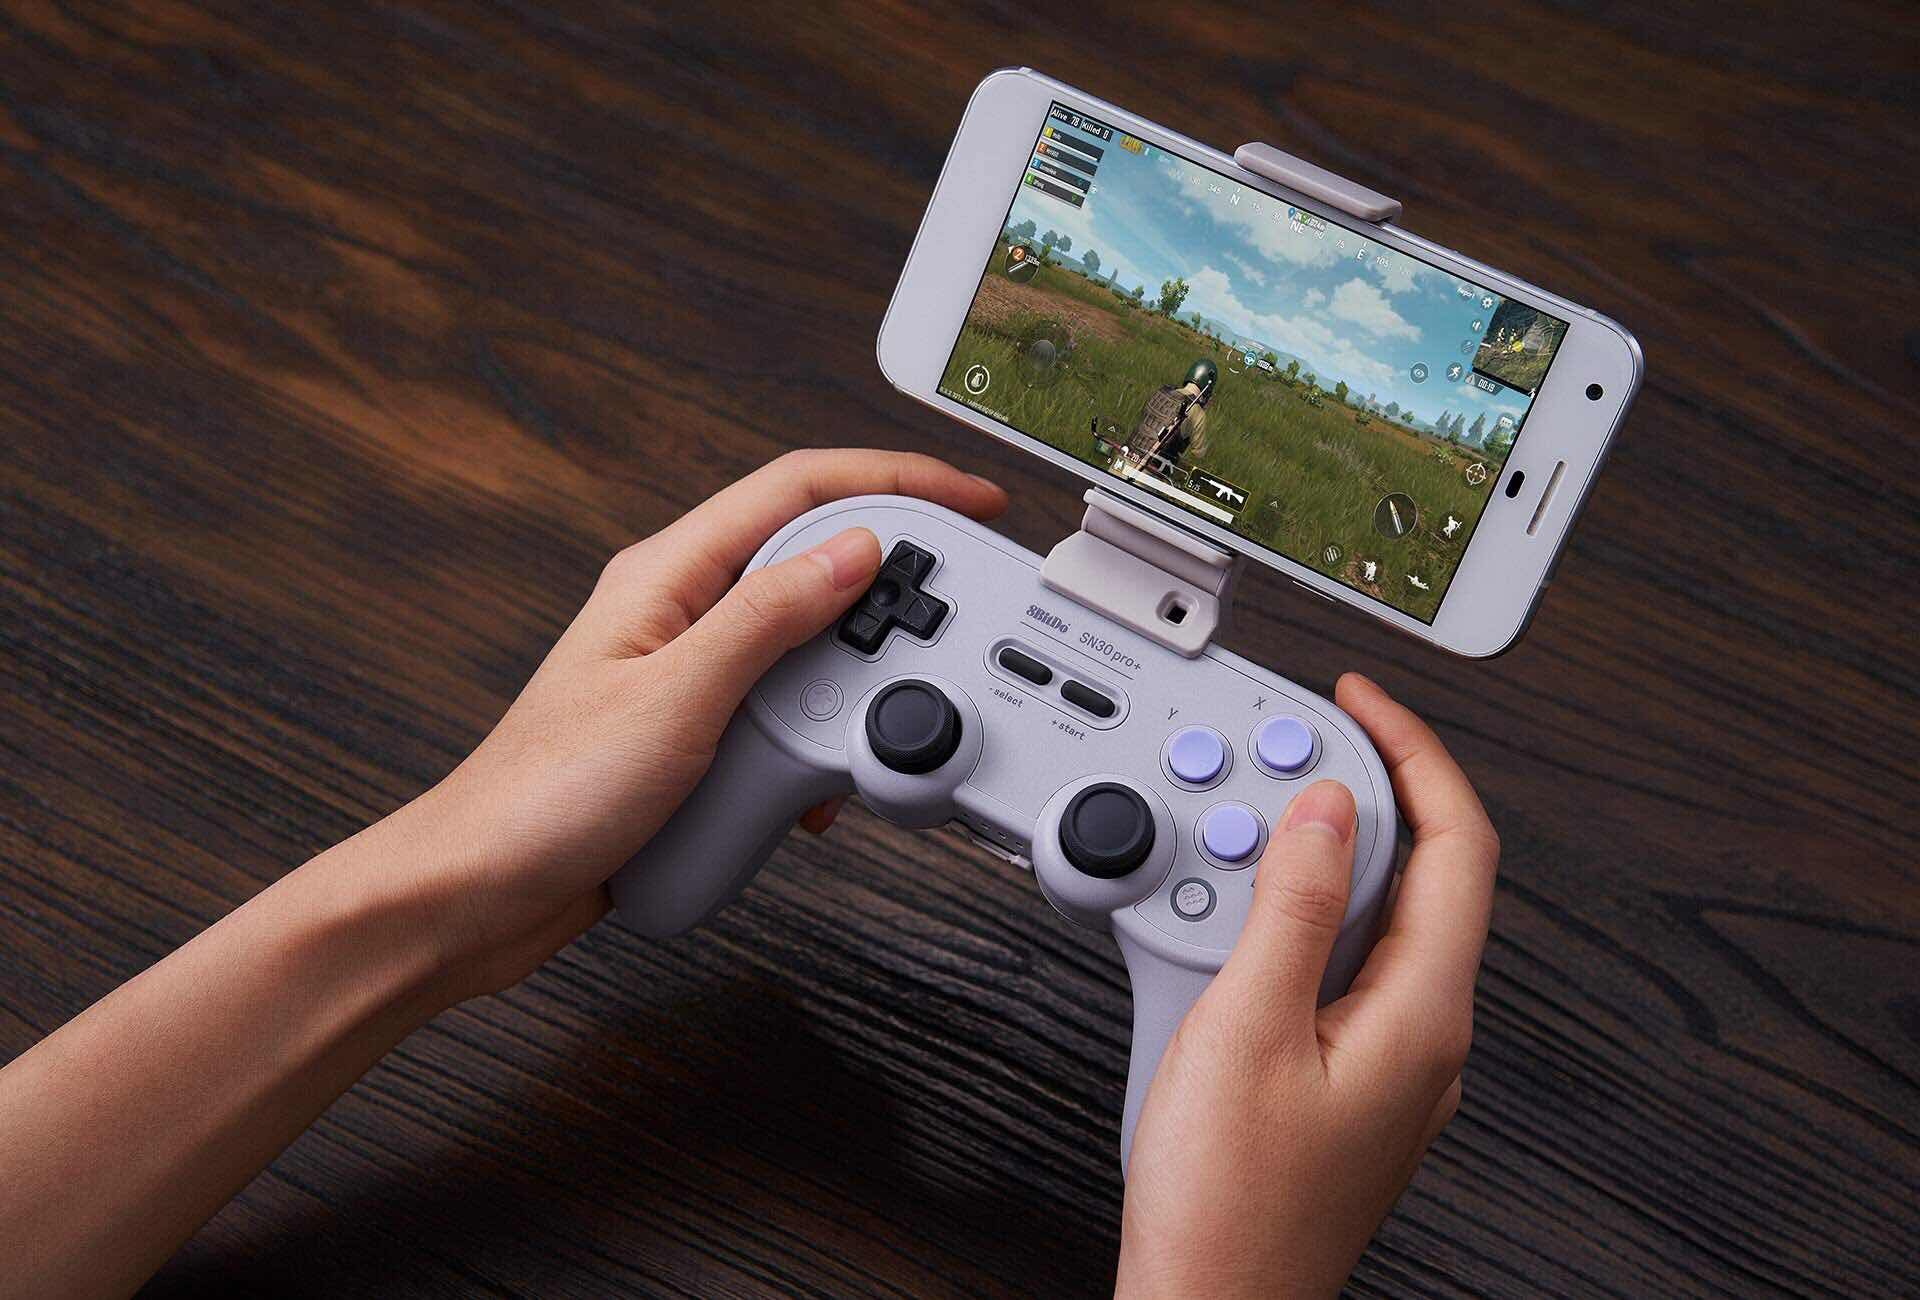 With the new smartphone clip, the Pro+ becomes a dedicated mobile gaming system.